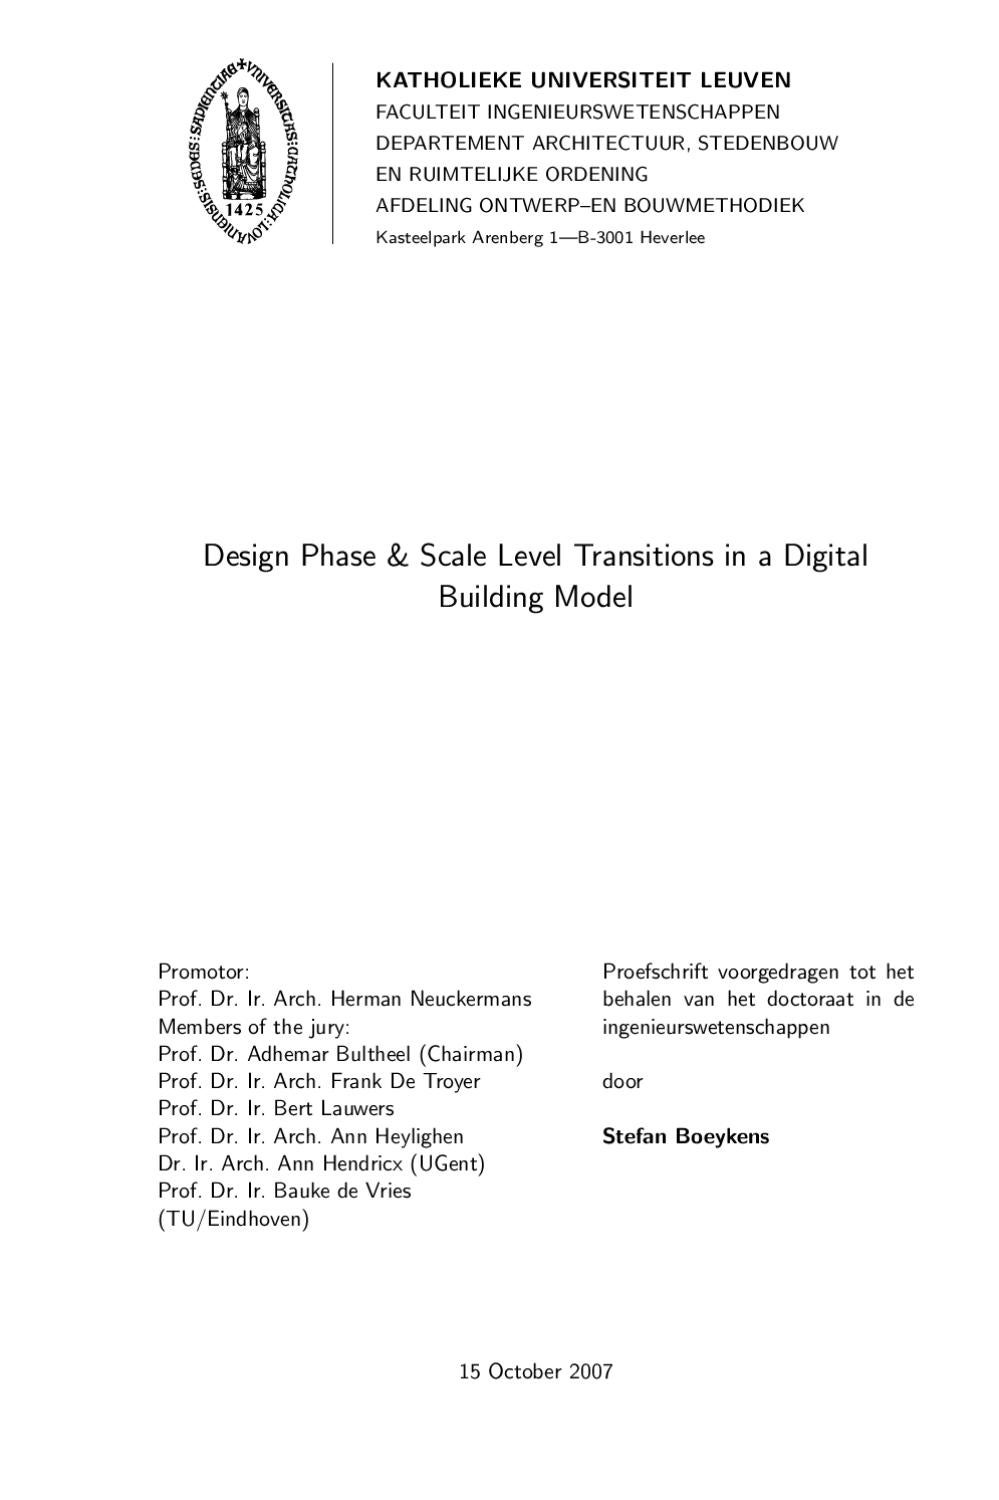 Design Phase and Scale Level Transitions in a Digital